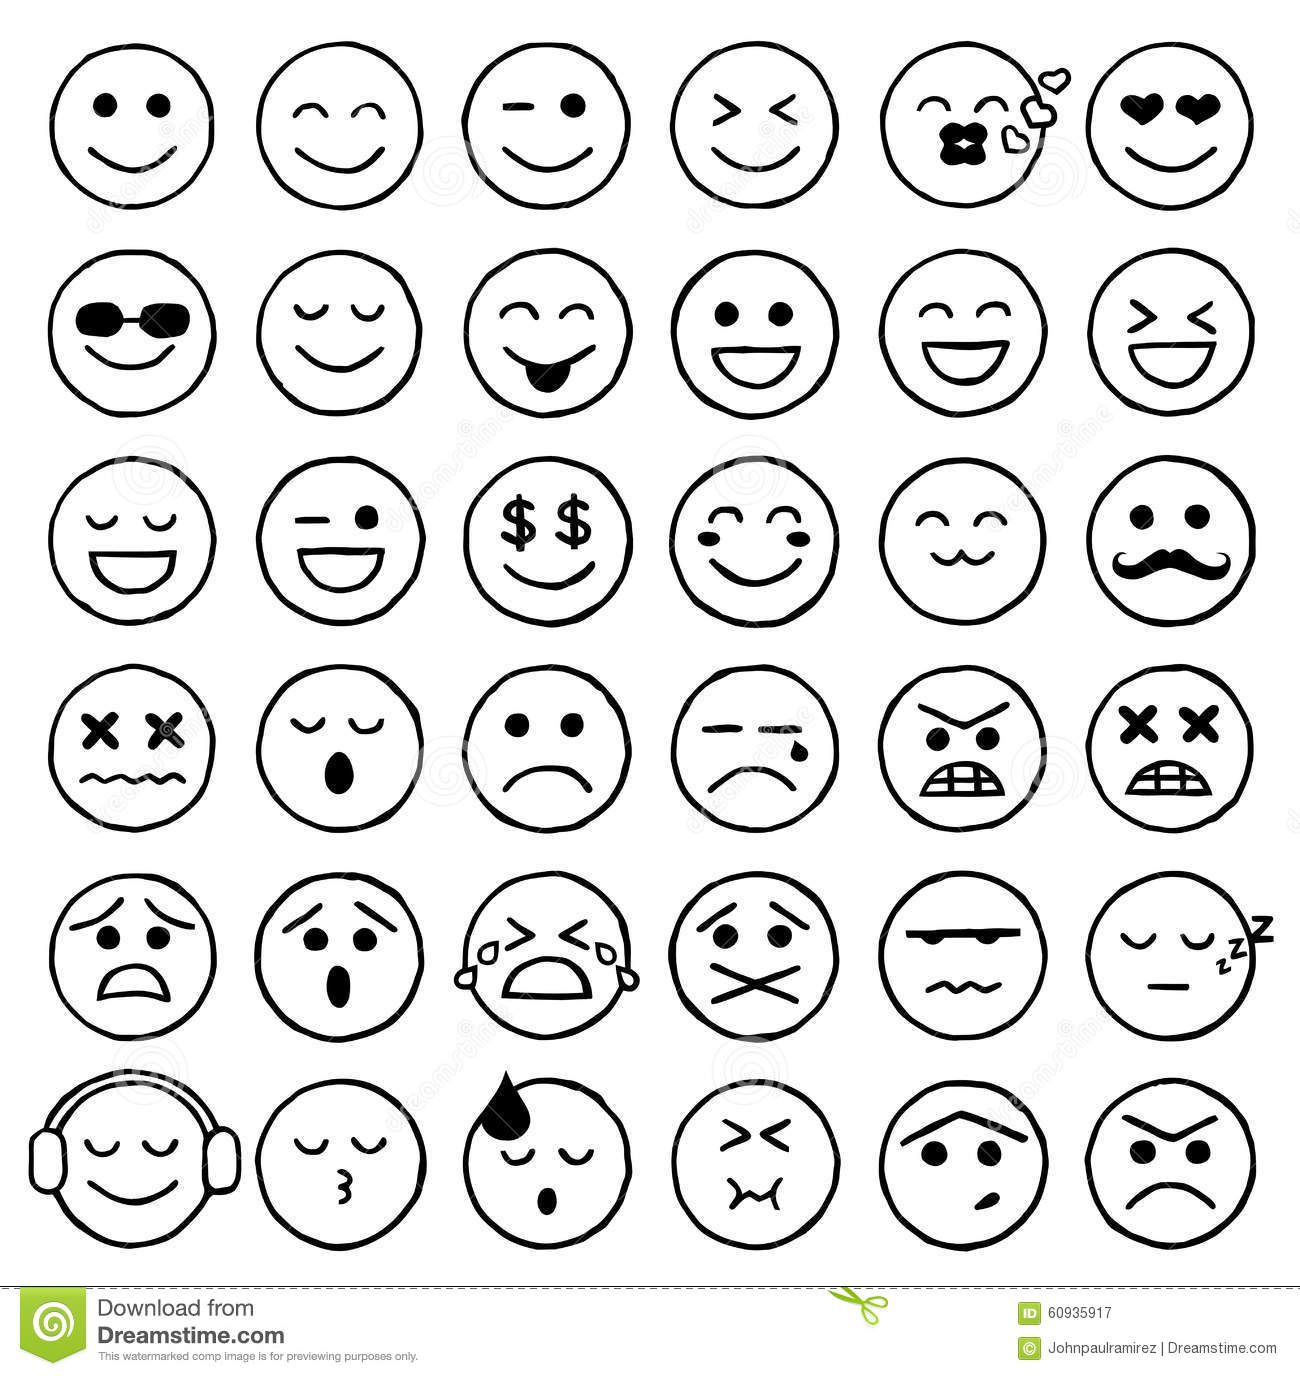 Smiley icons emoticons facial expressions internet stock vector image 6 - Smiley noir et blanc ...